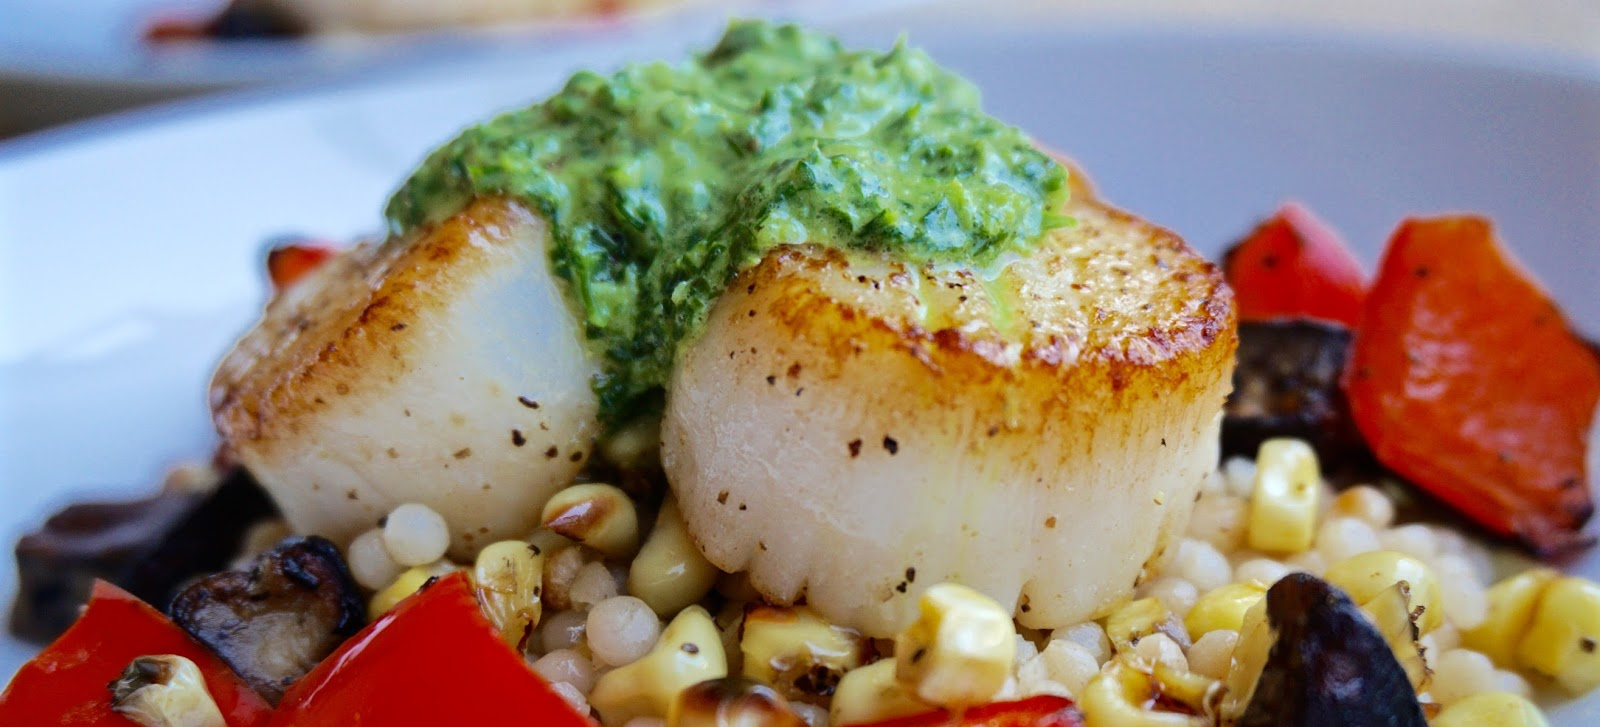 This Couple's Palate: Summer Seafood: Scallops